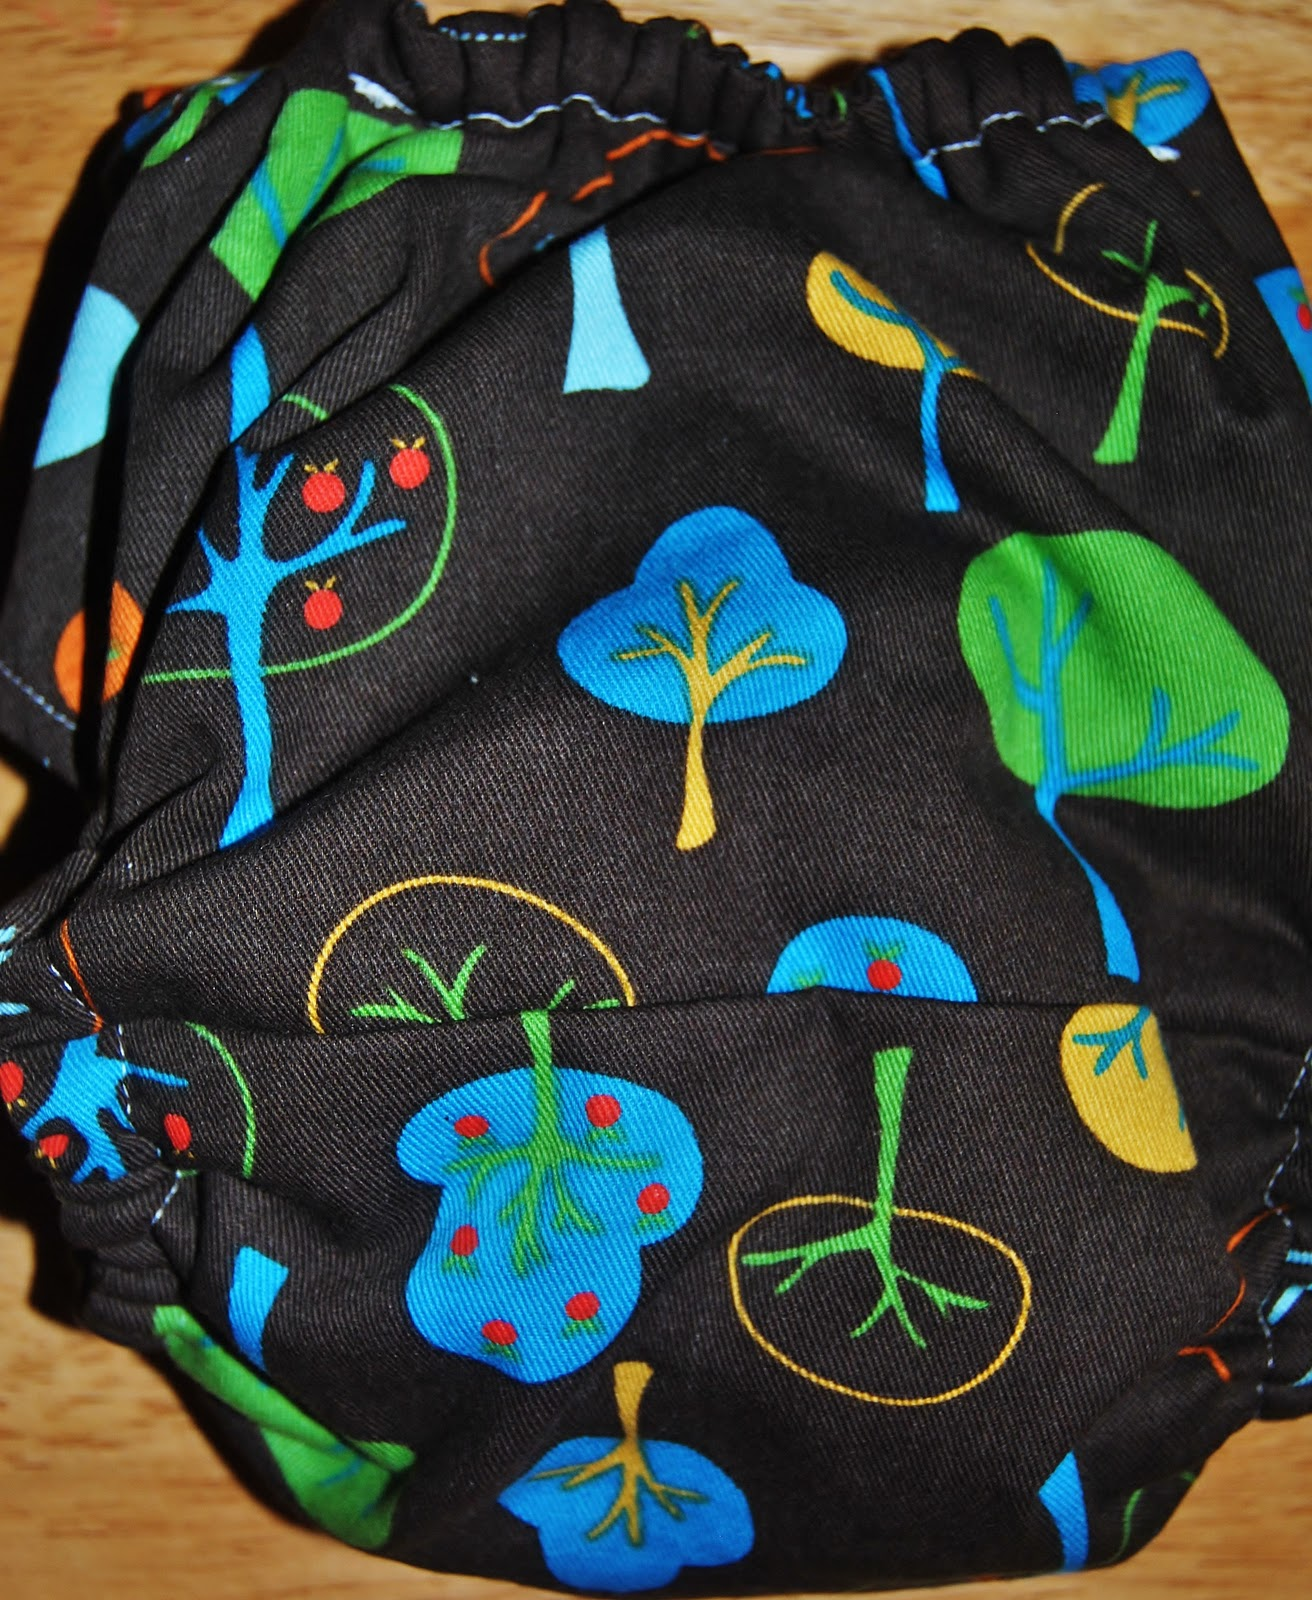 Greenchild Creations New Cloth Diaper Design Review We